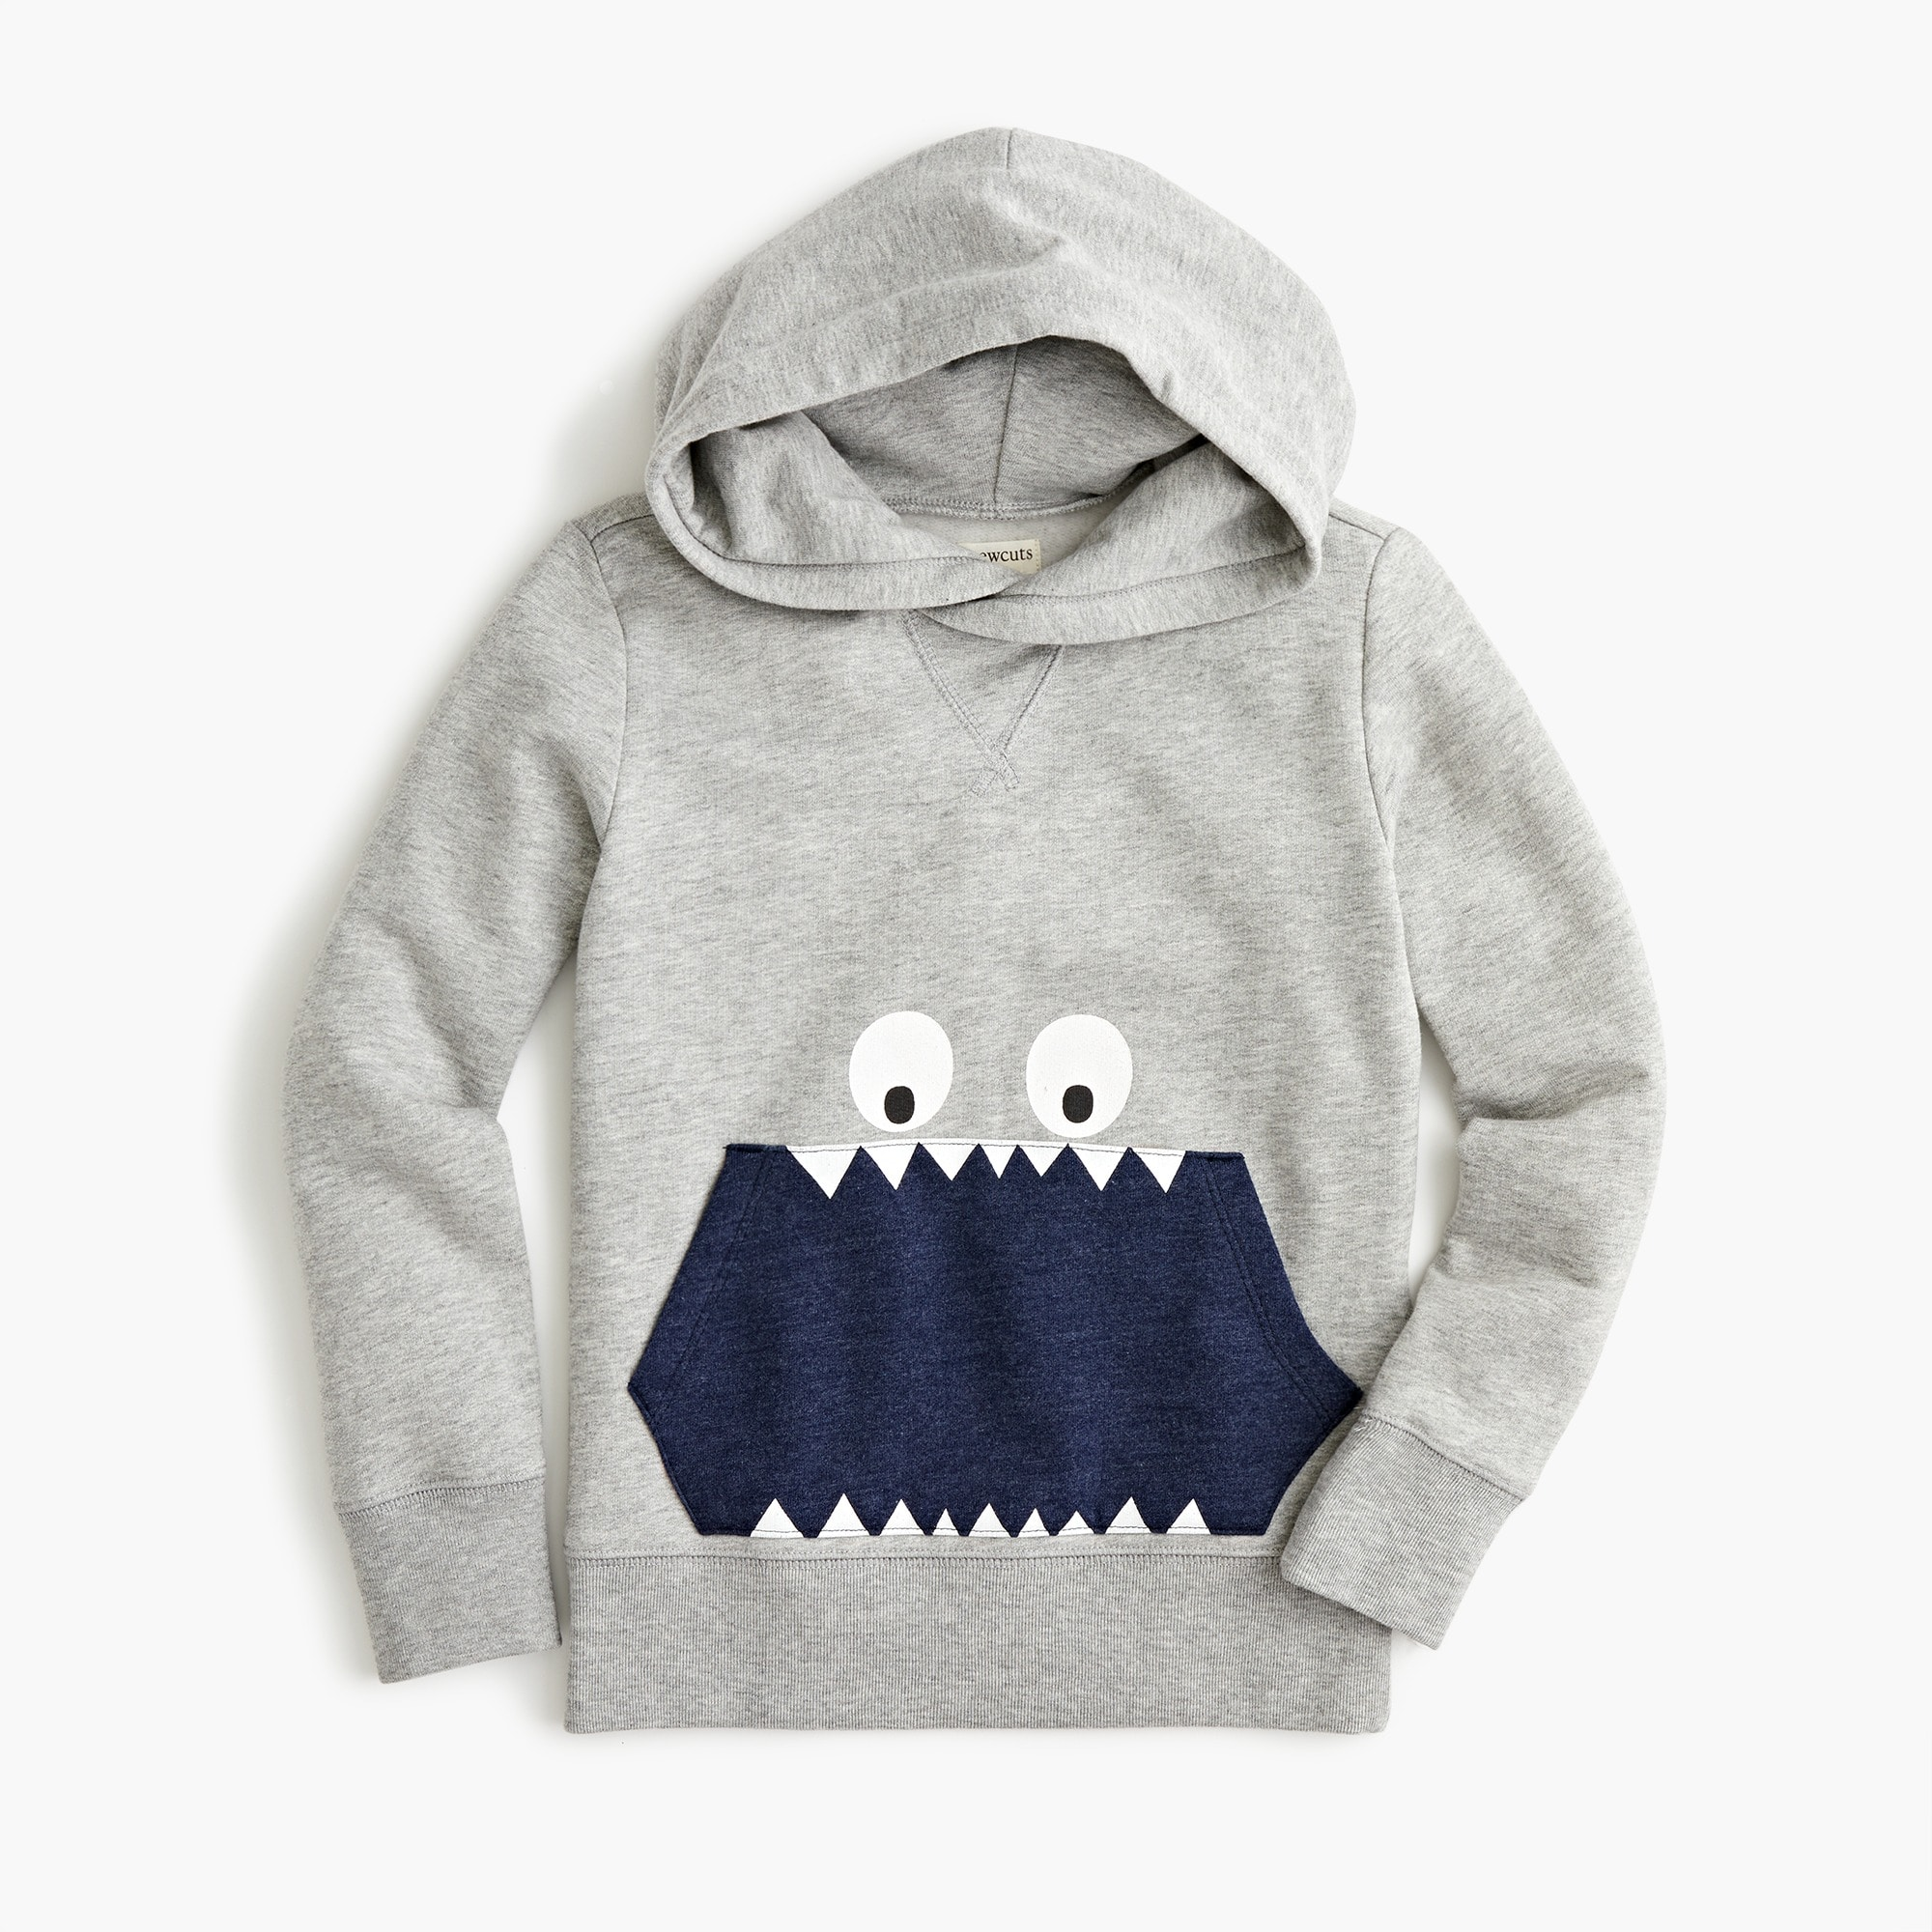 max the monster™ boys' hoodie sweatshirt : boy sweatshirts